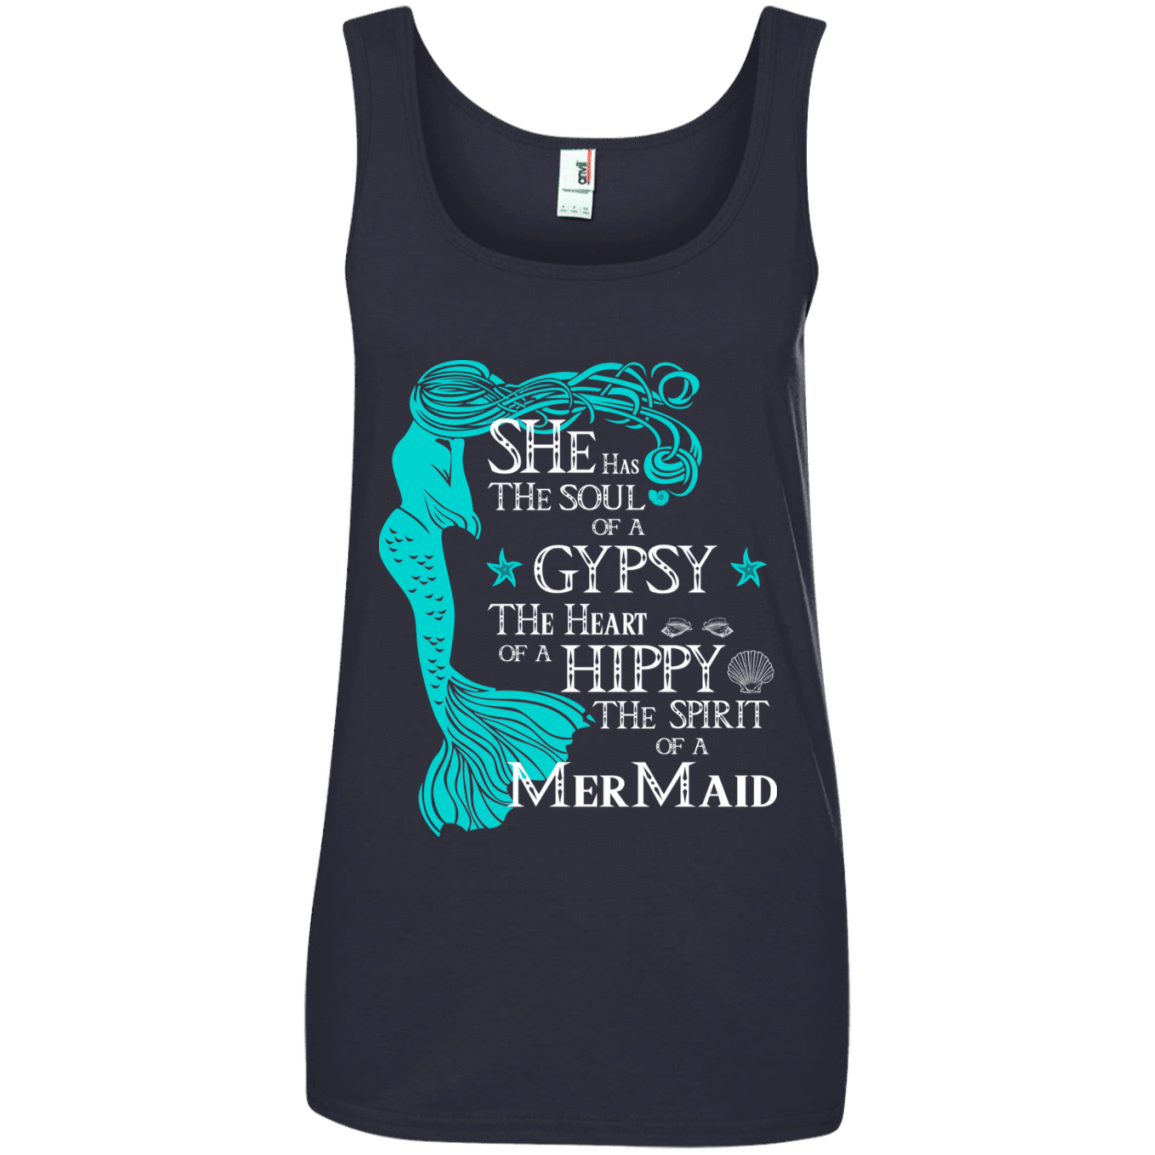 She Has The Soul Of A Gypsy The Heart Of A Hippy The Spirit Of A Mermaid 864-8757-72932507-42375 - Tee Ript